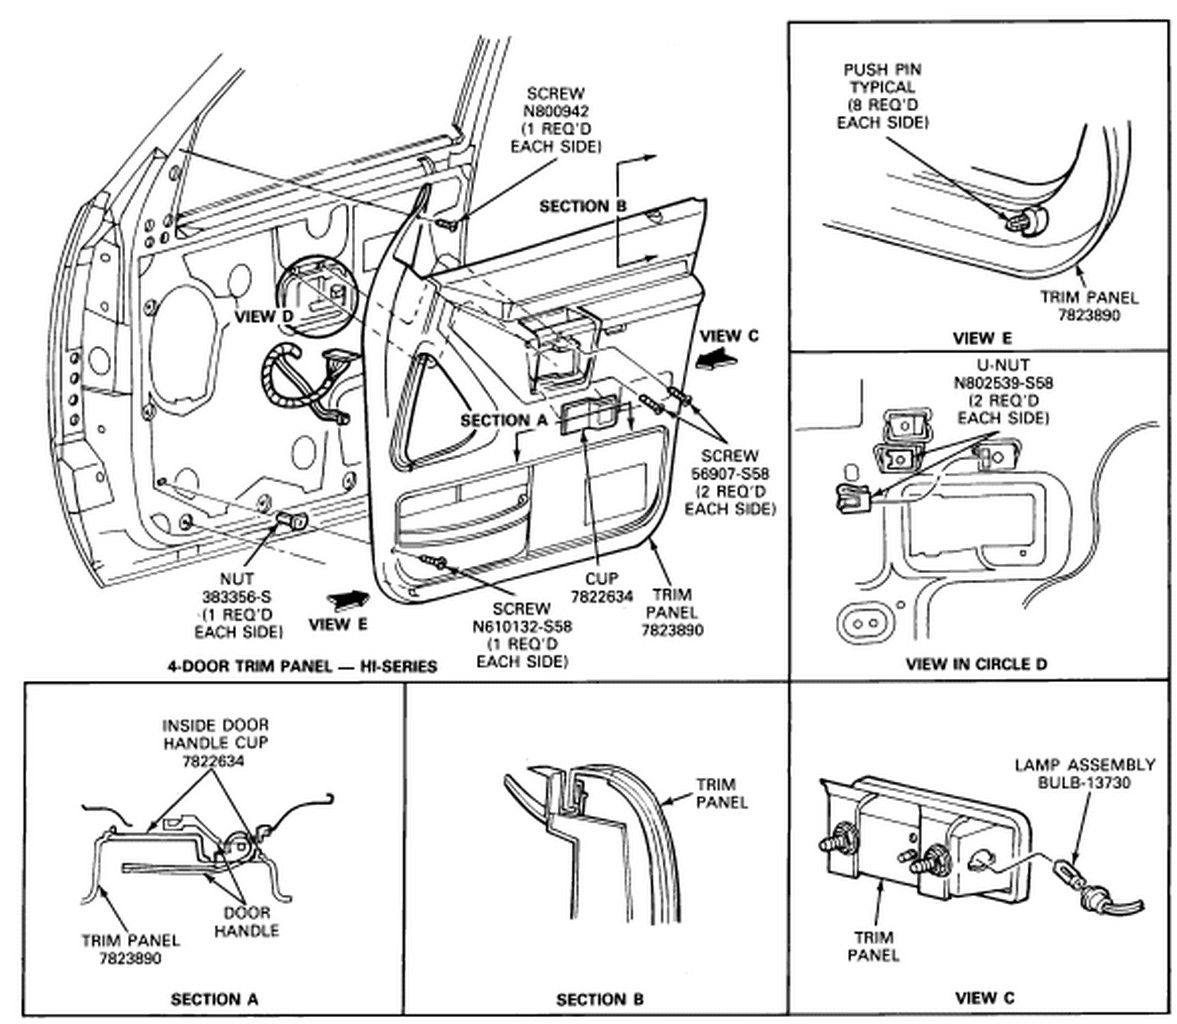 hight resolution of ford fusion door diagram wiring diagram ford fusion door parts diagram ford fusion door diagram